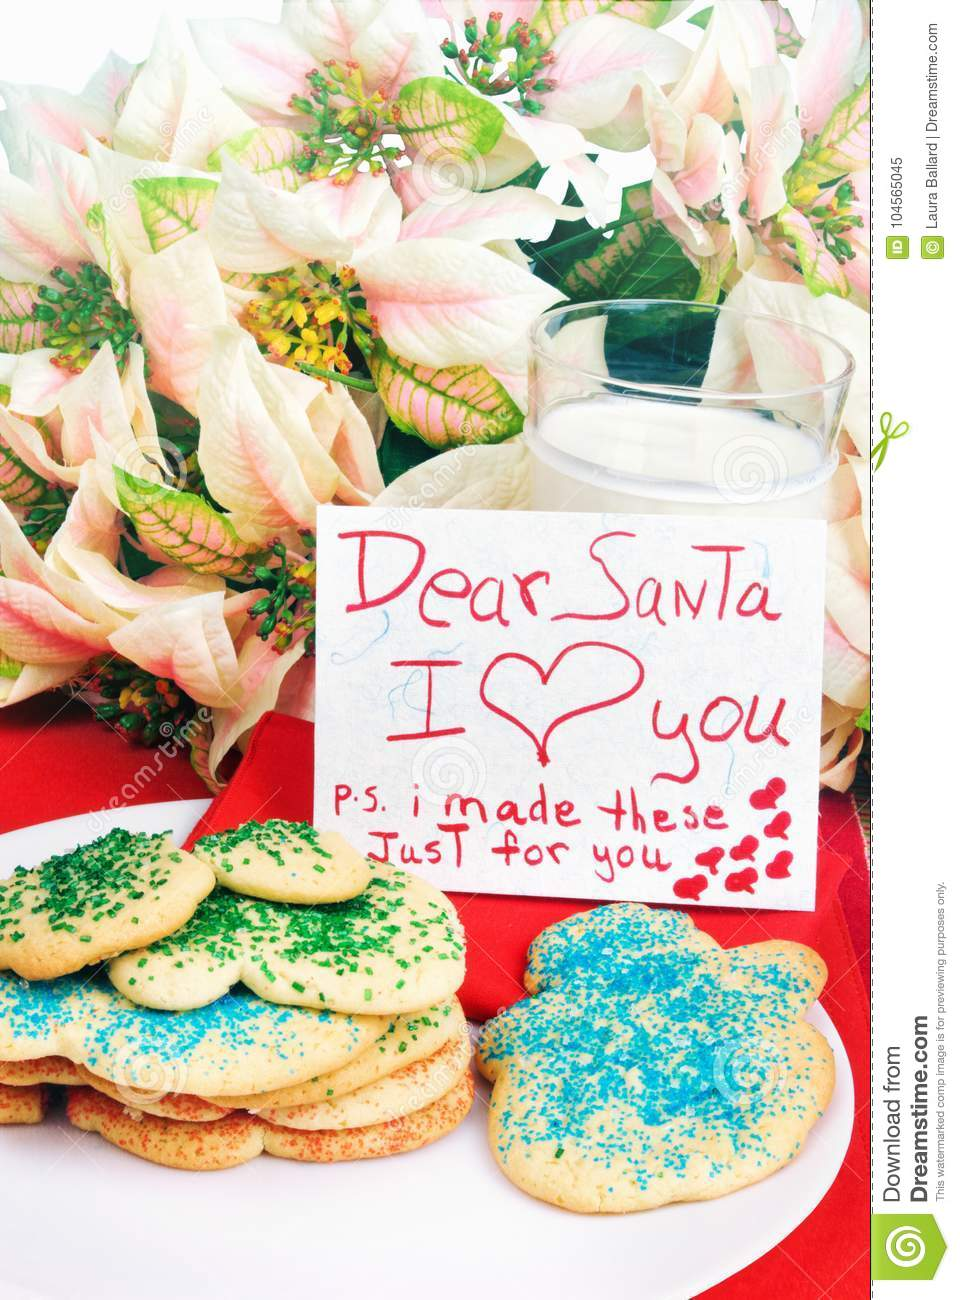 Christmas Cookies And A Note To Santa Claus Stock Image Image Of